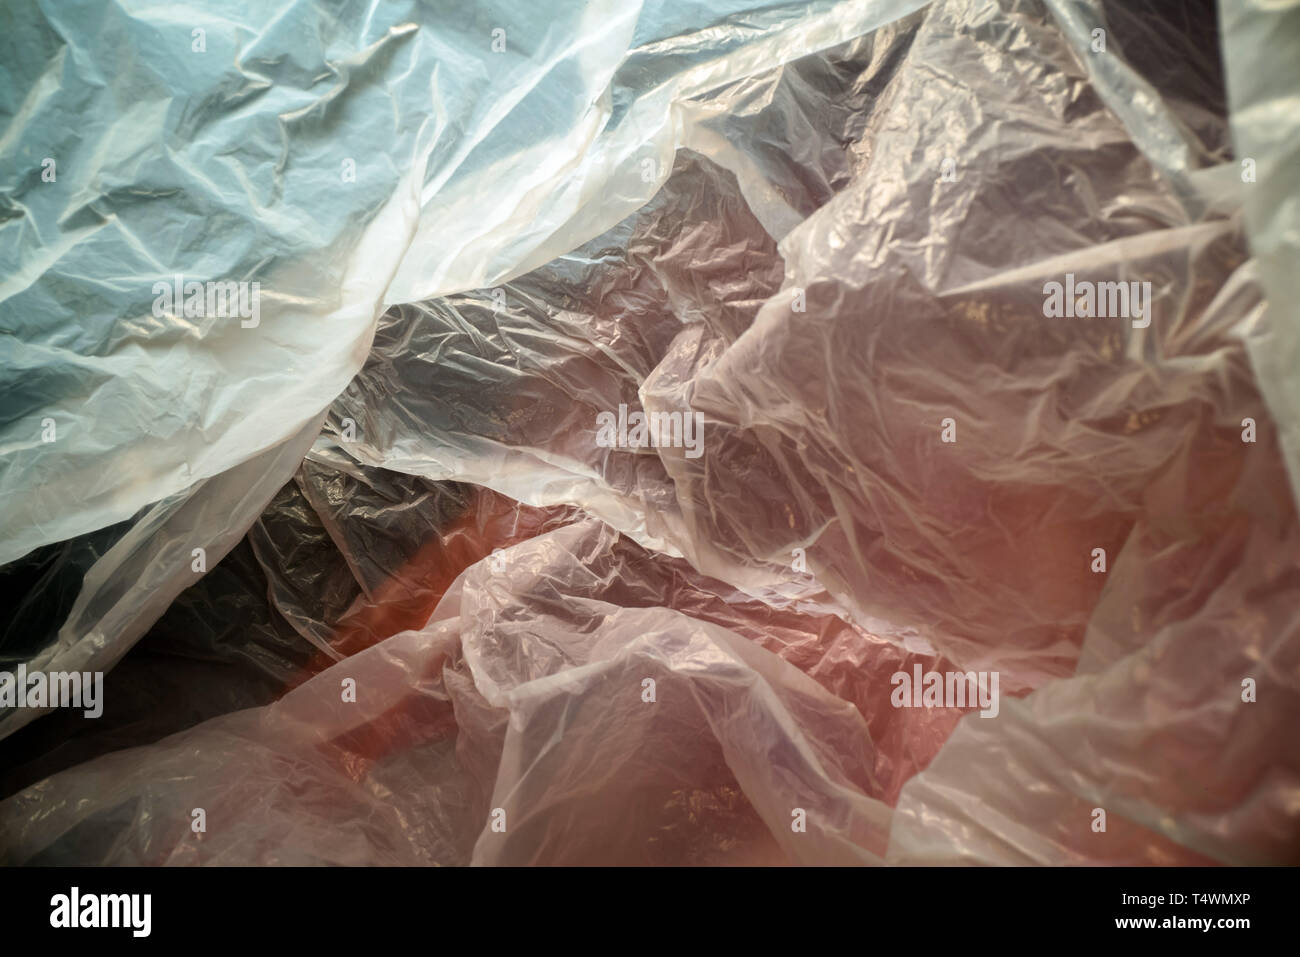 Inside a disposable plastic bag. Lightweight transparent, reusable plastic waste. Rubbish bag, plastic recycling, environmental issues - Stock Image